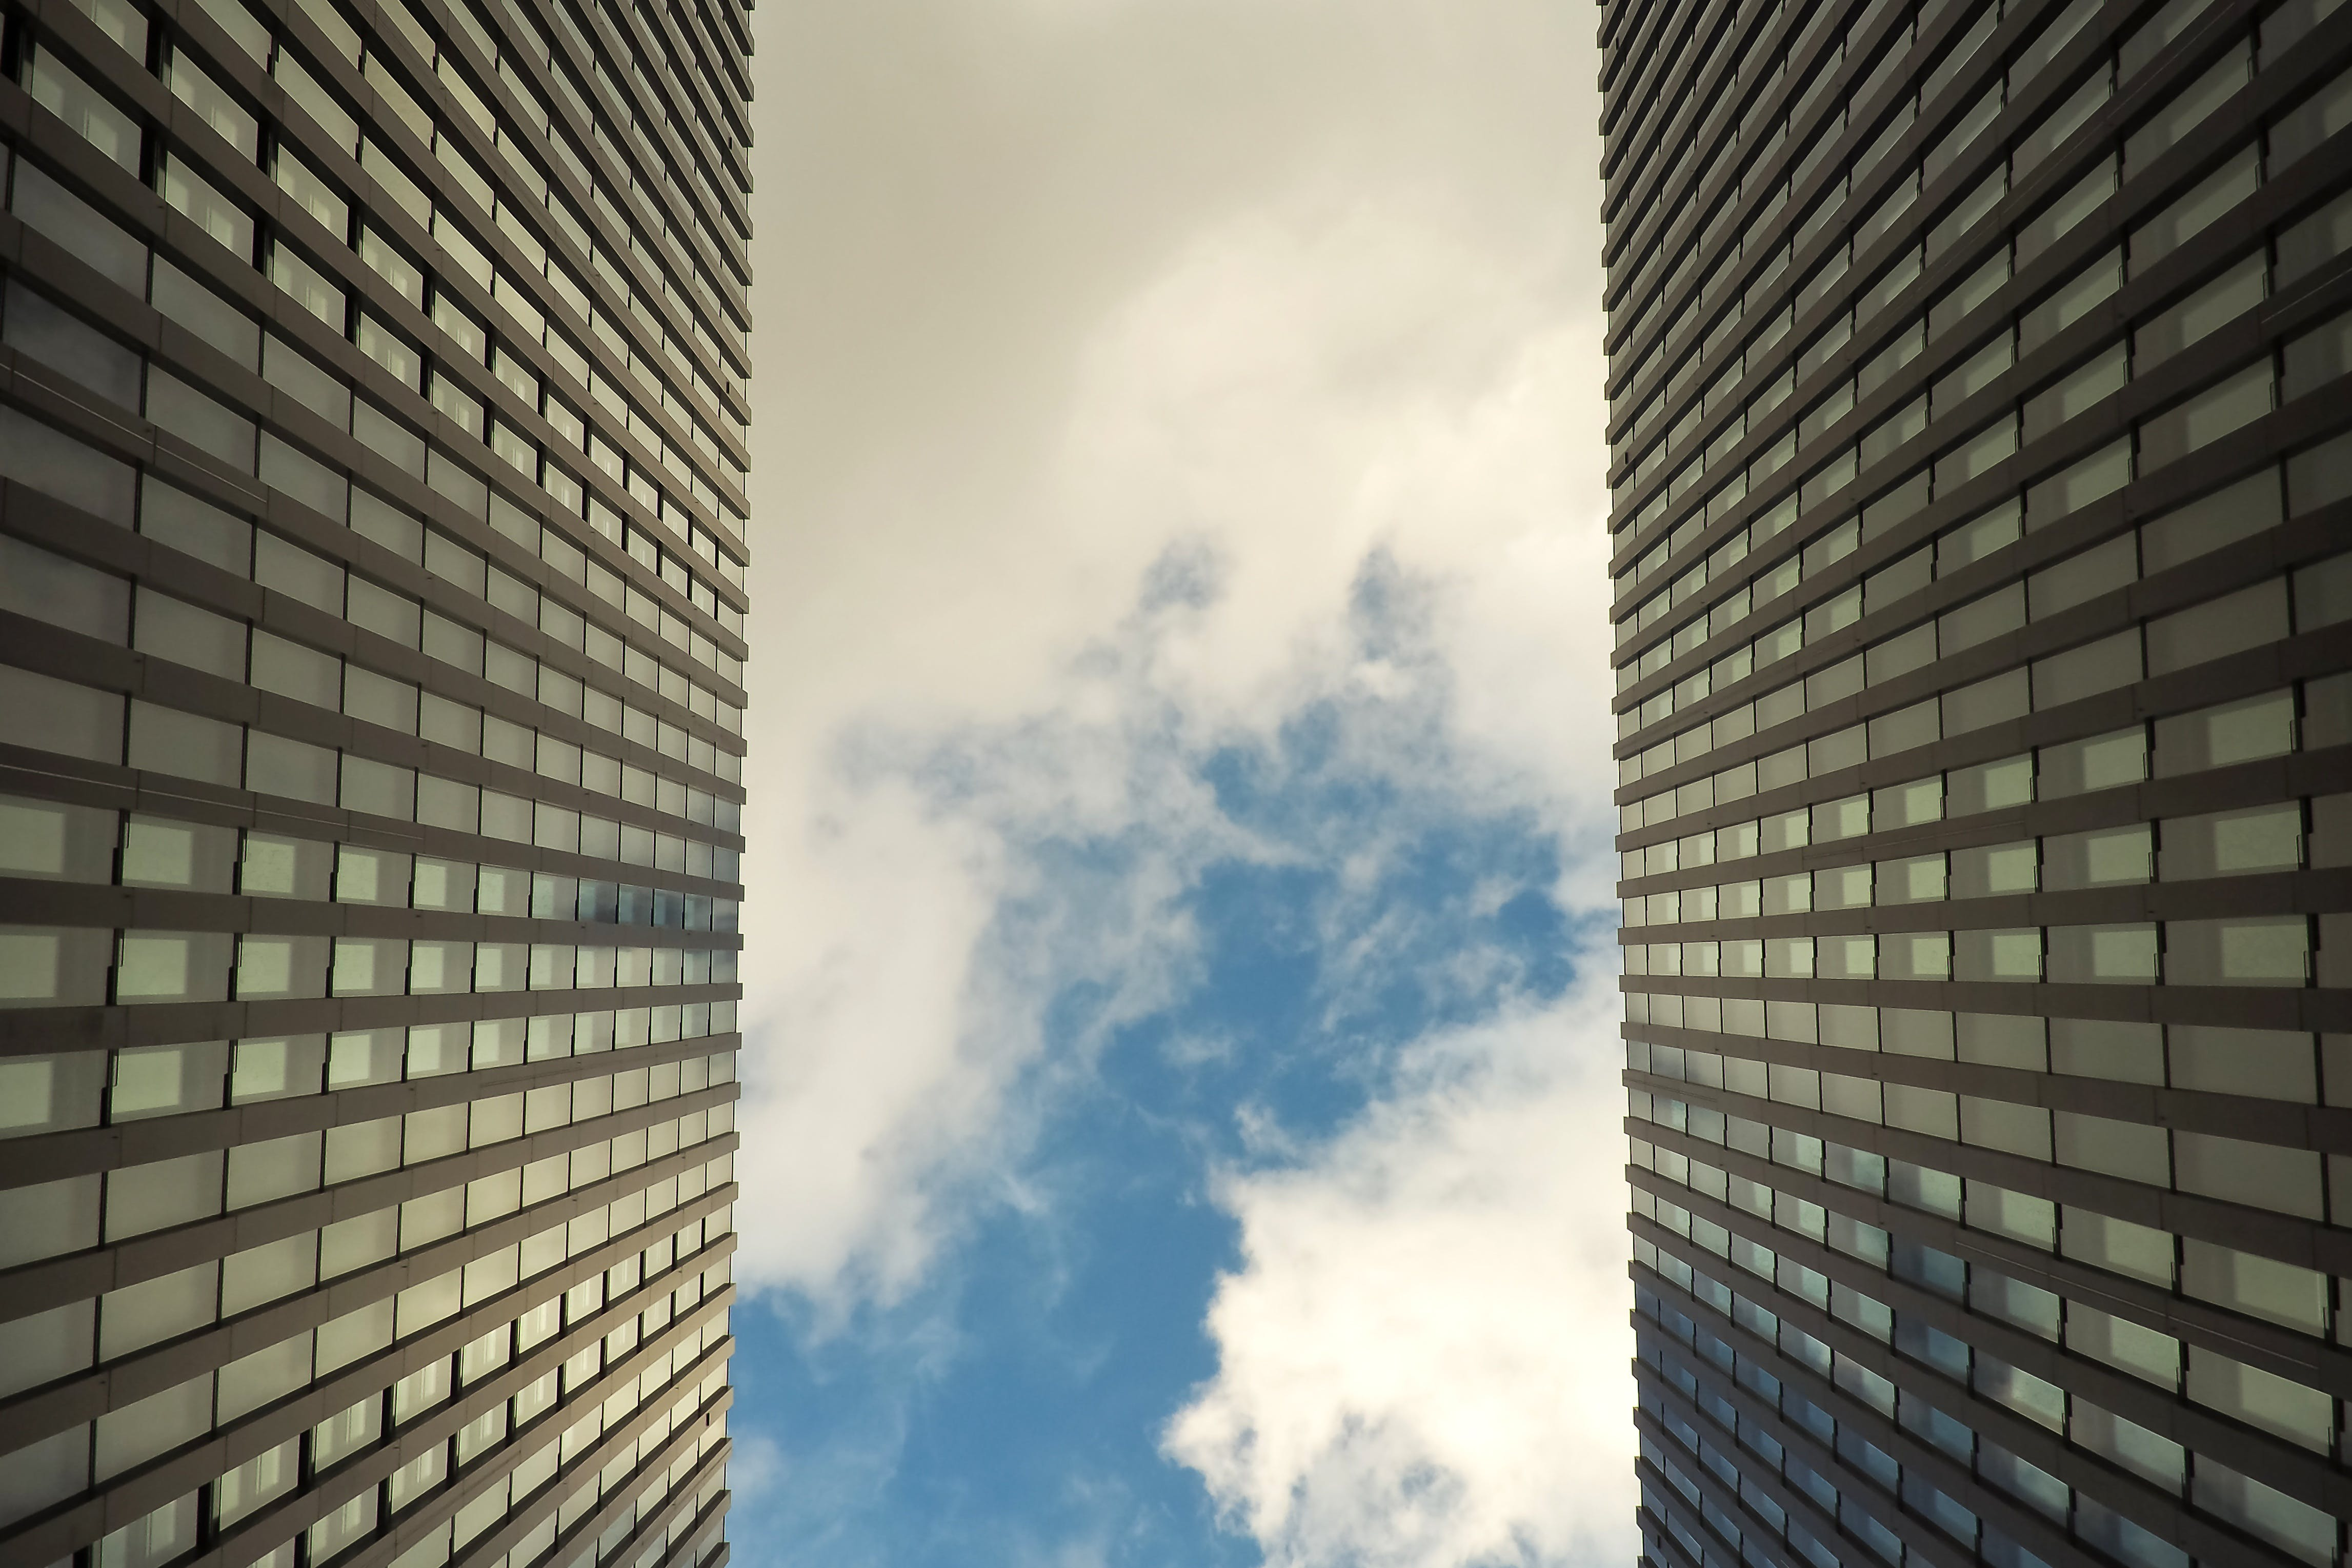 Worm's-eye View Photography of Building Under Cloudy Sky